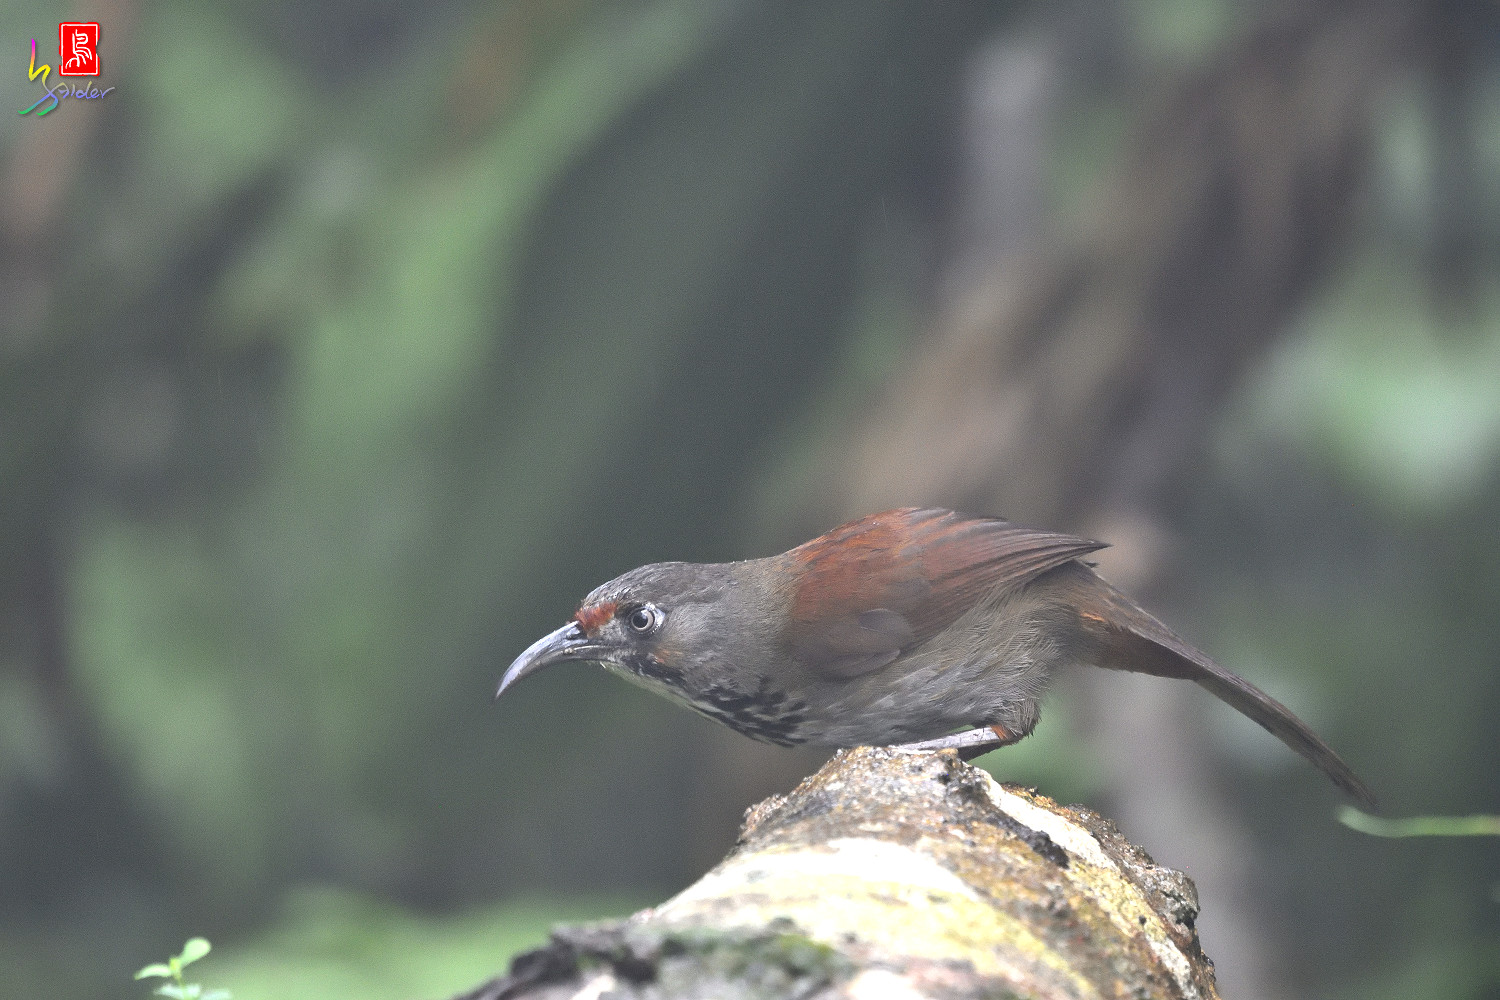 Rusty-cheeked_Scimitar-babbler_4437